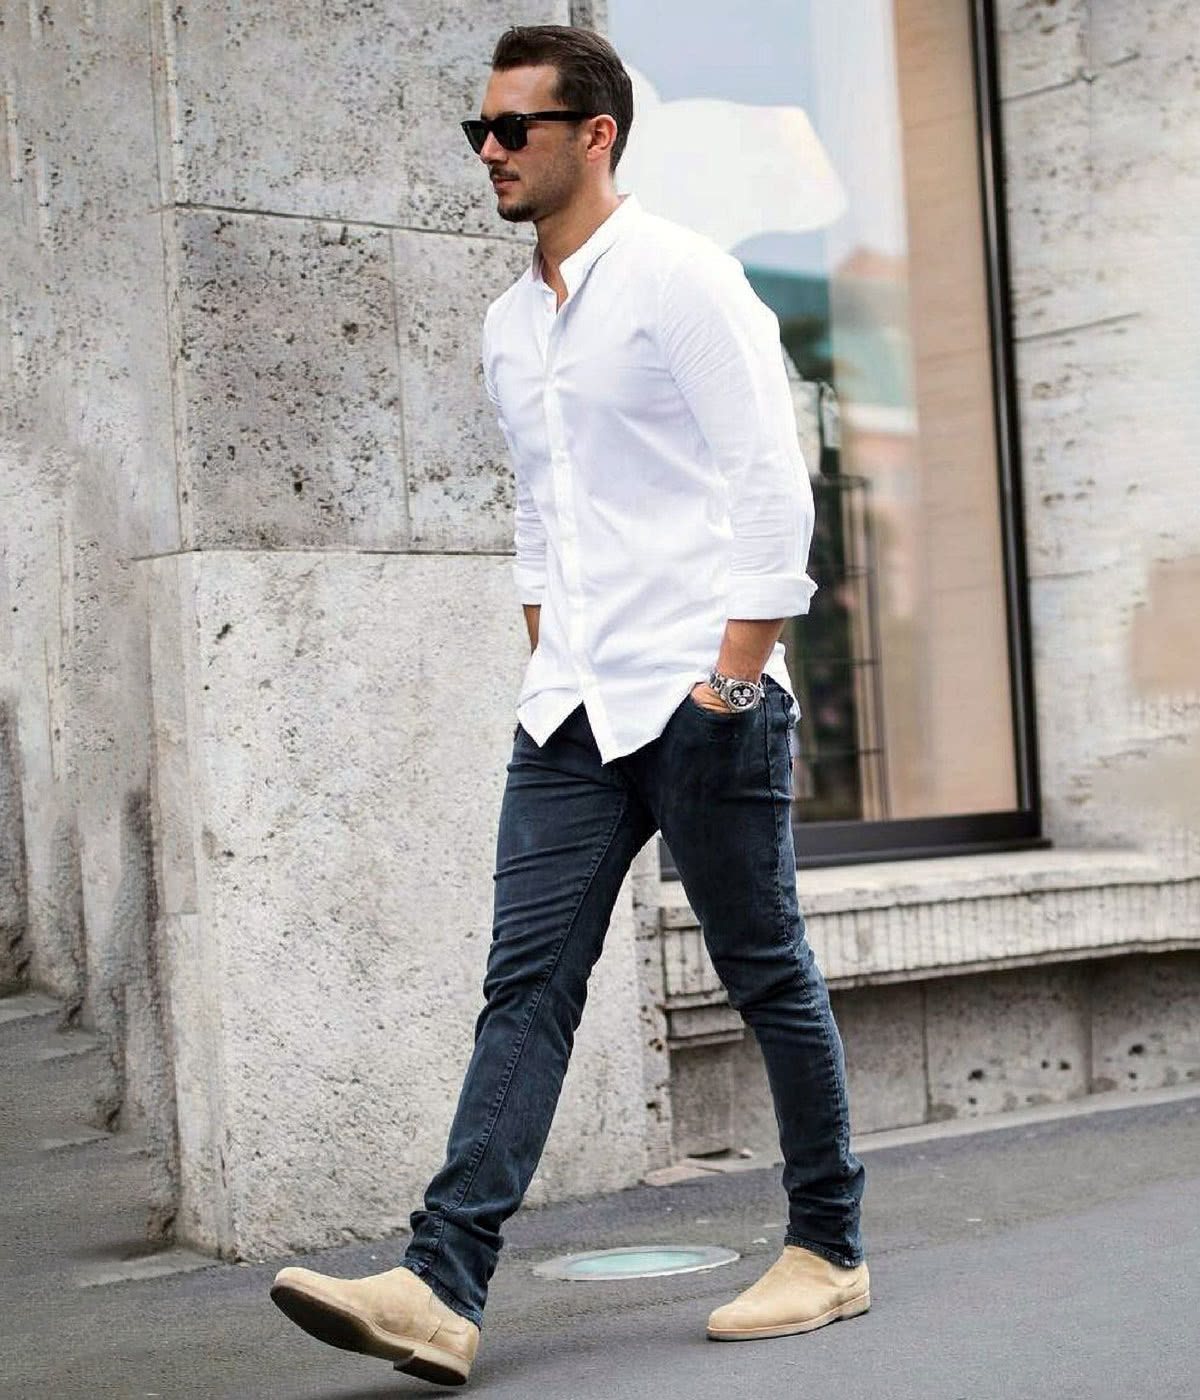 Casual dress code men style summer - Luxe Digital